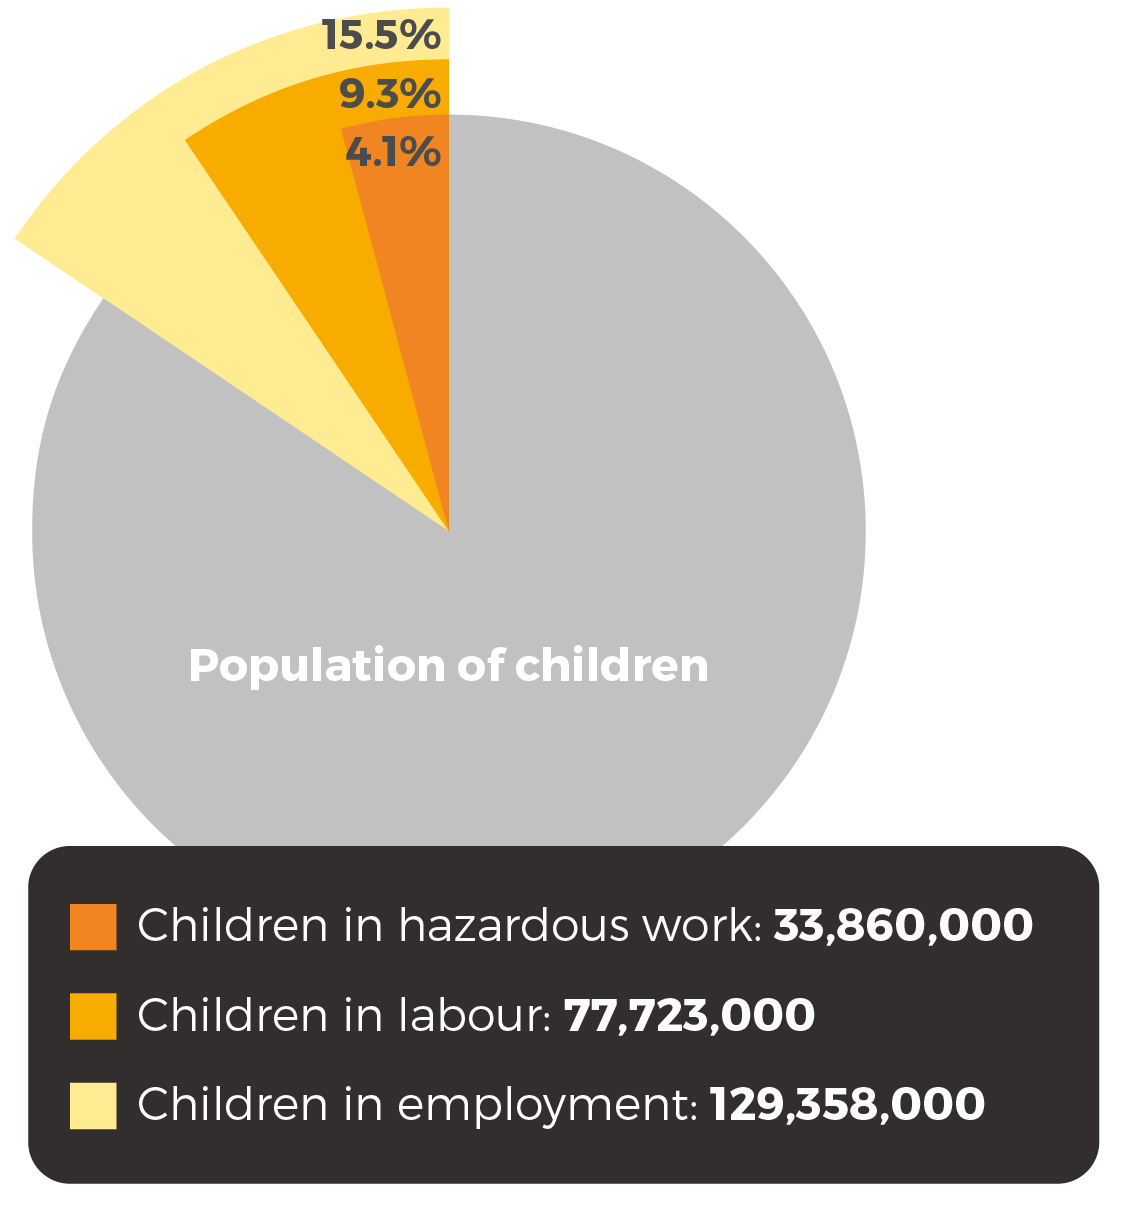 129.3m children are in employment; 77.7m are in child labour and 33.9m in hazardous work